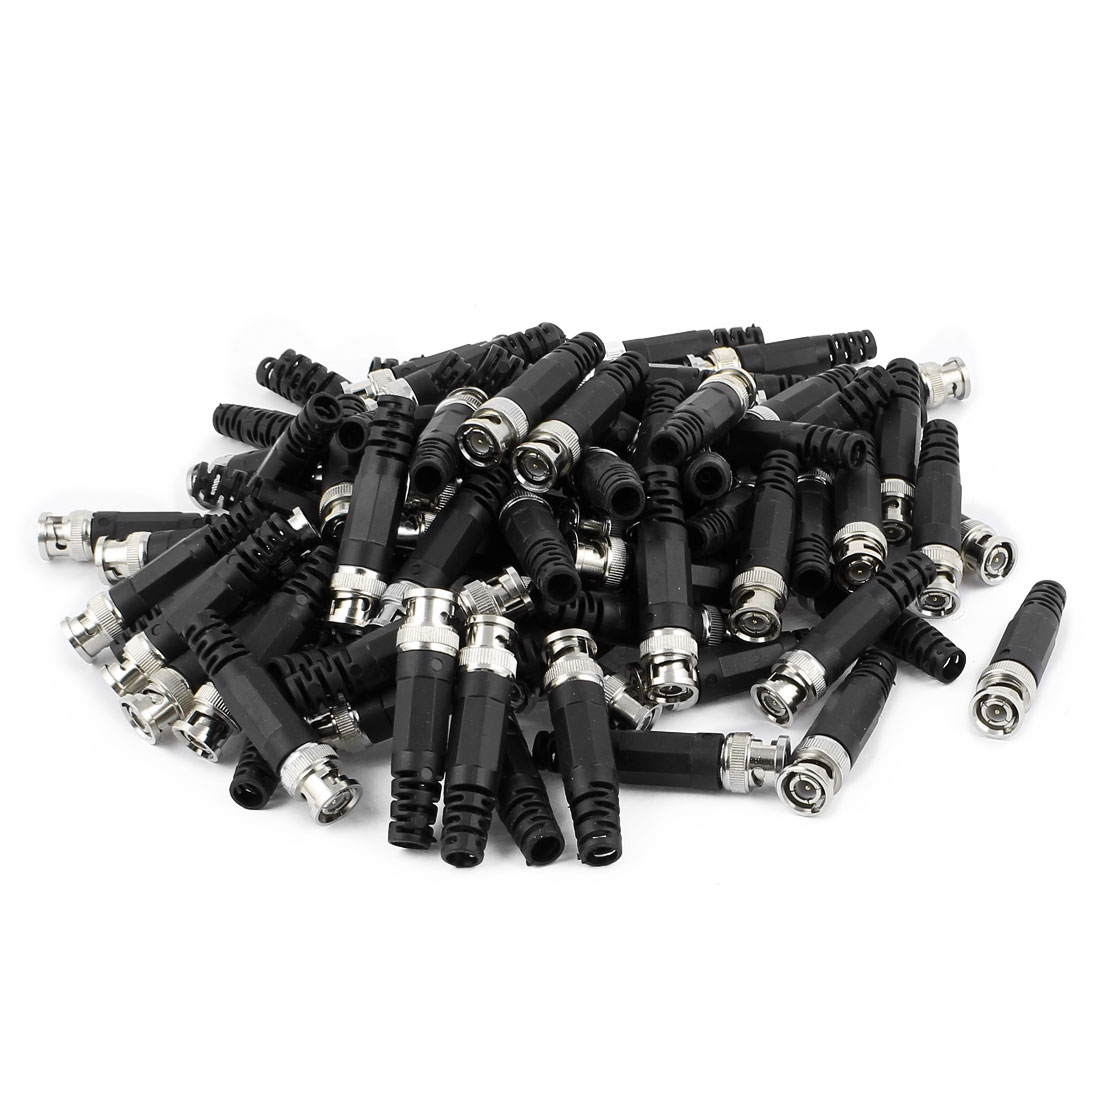 100Pcs Plastic Tail BNC Male Straight Connector for CCTV Camera Coaxial Cable